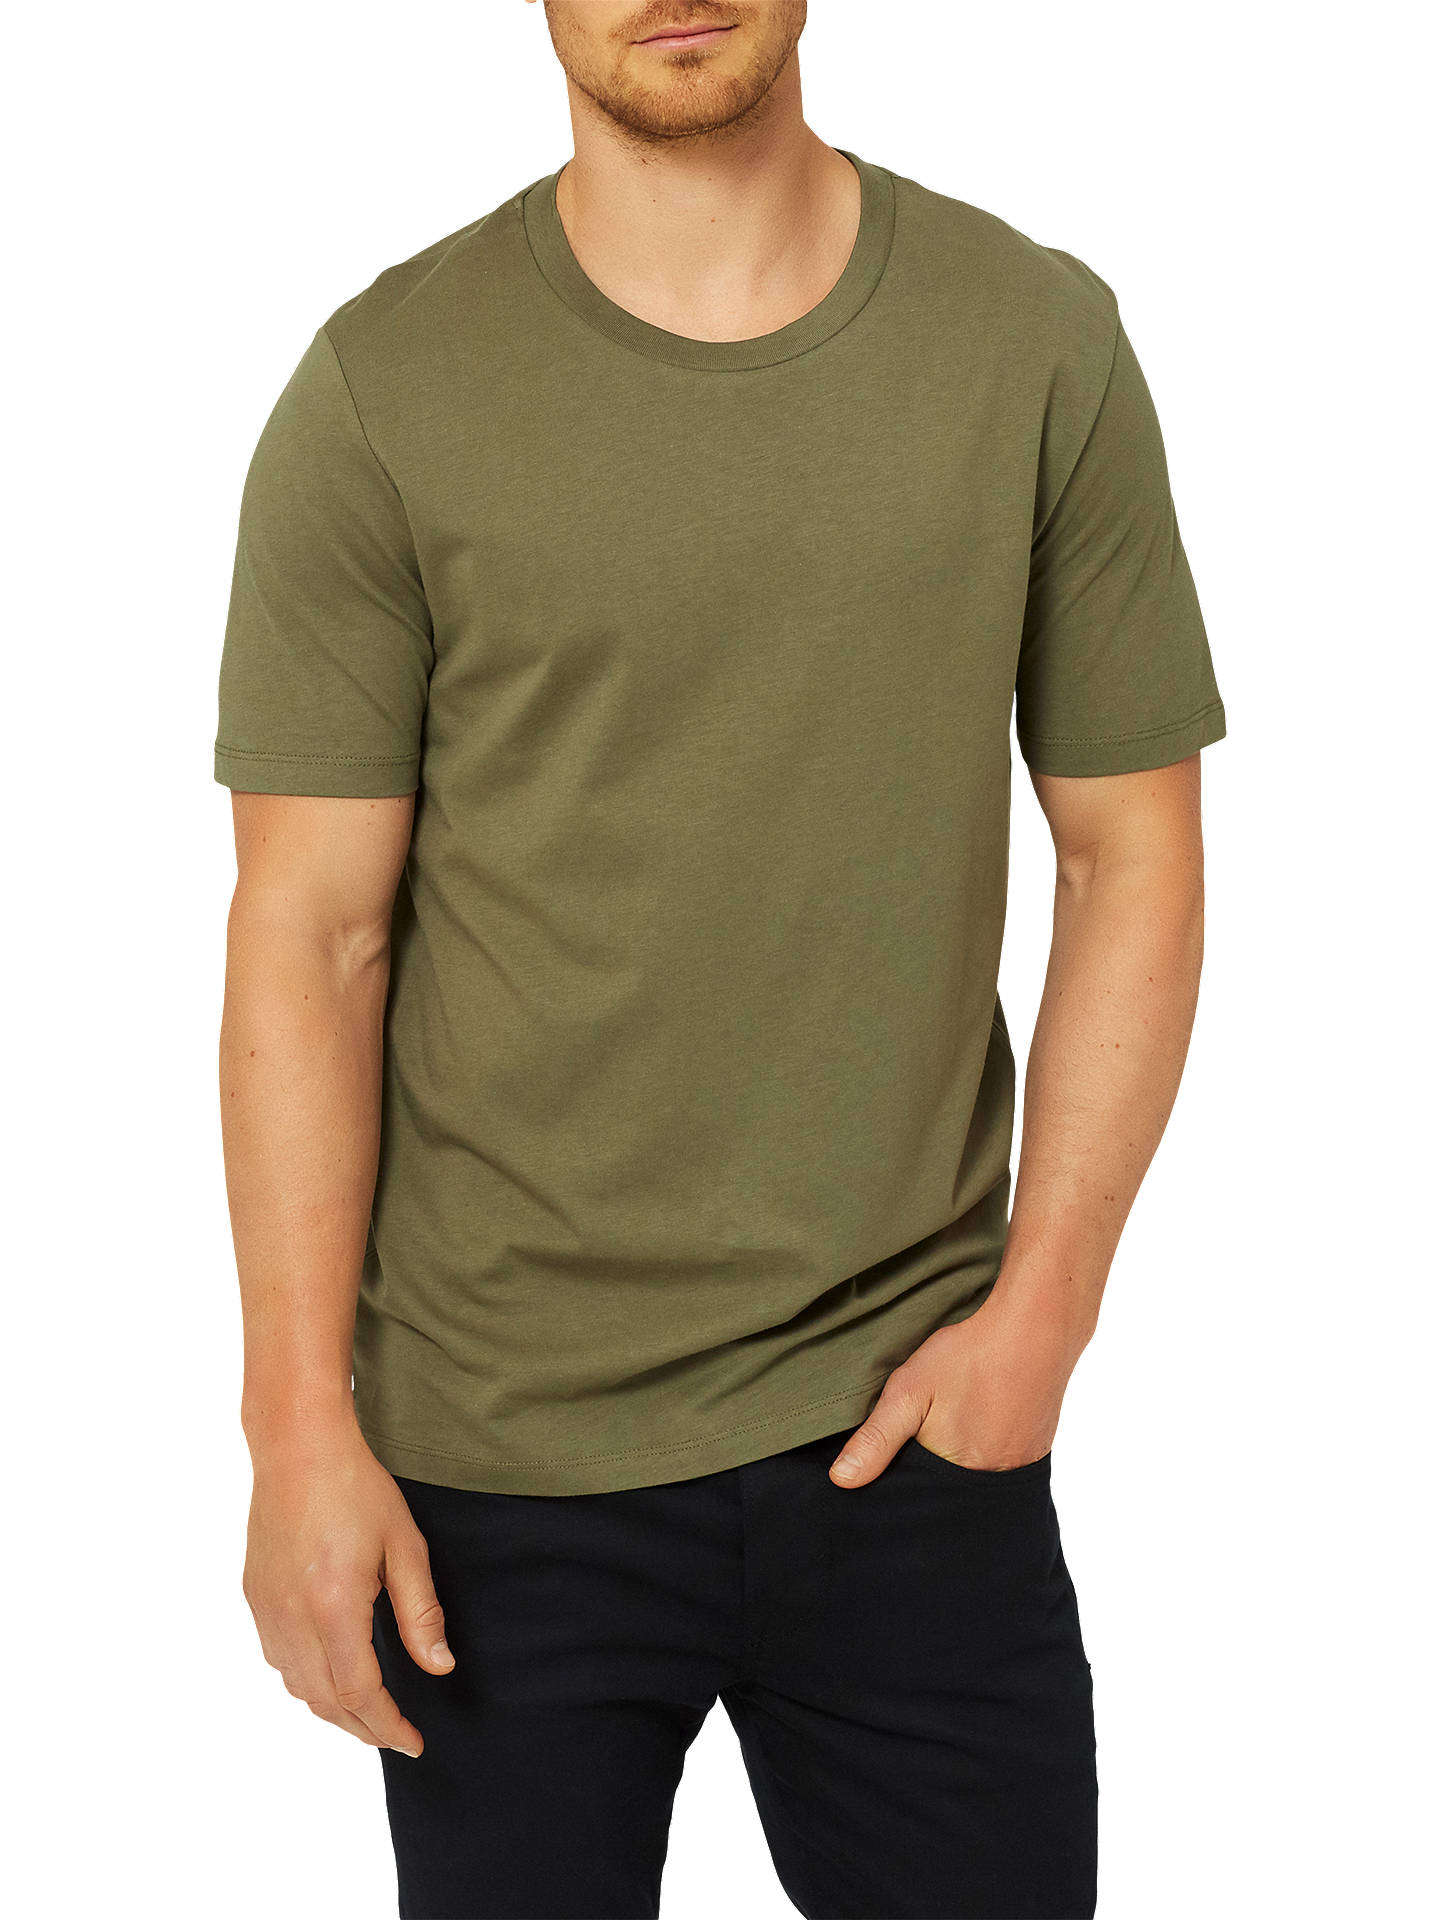 db2741f96bd8 Buy Selected Homme Perfect O-Neck Pima Cotton T-Shirt, Dusty Olive, ...